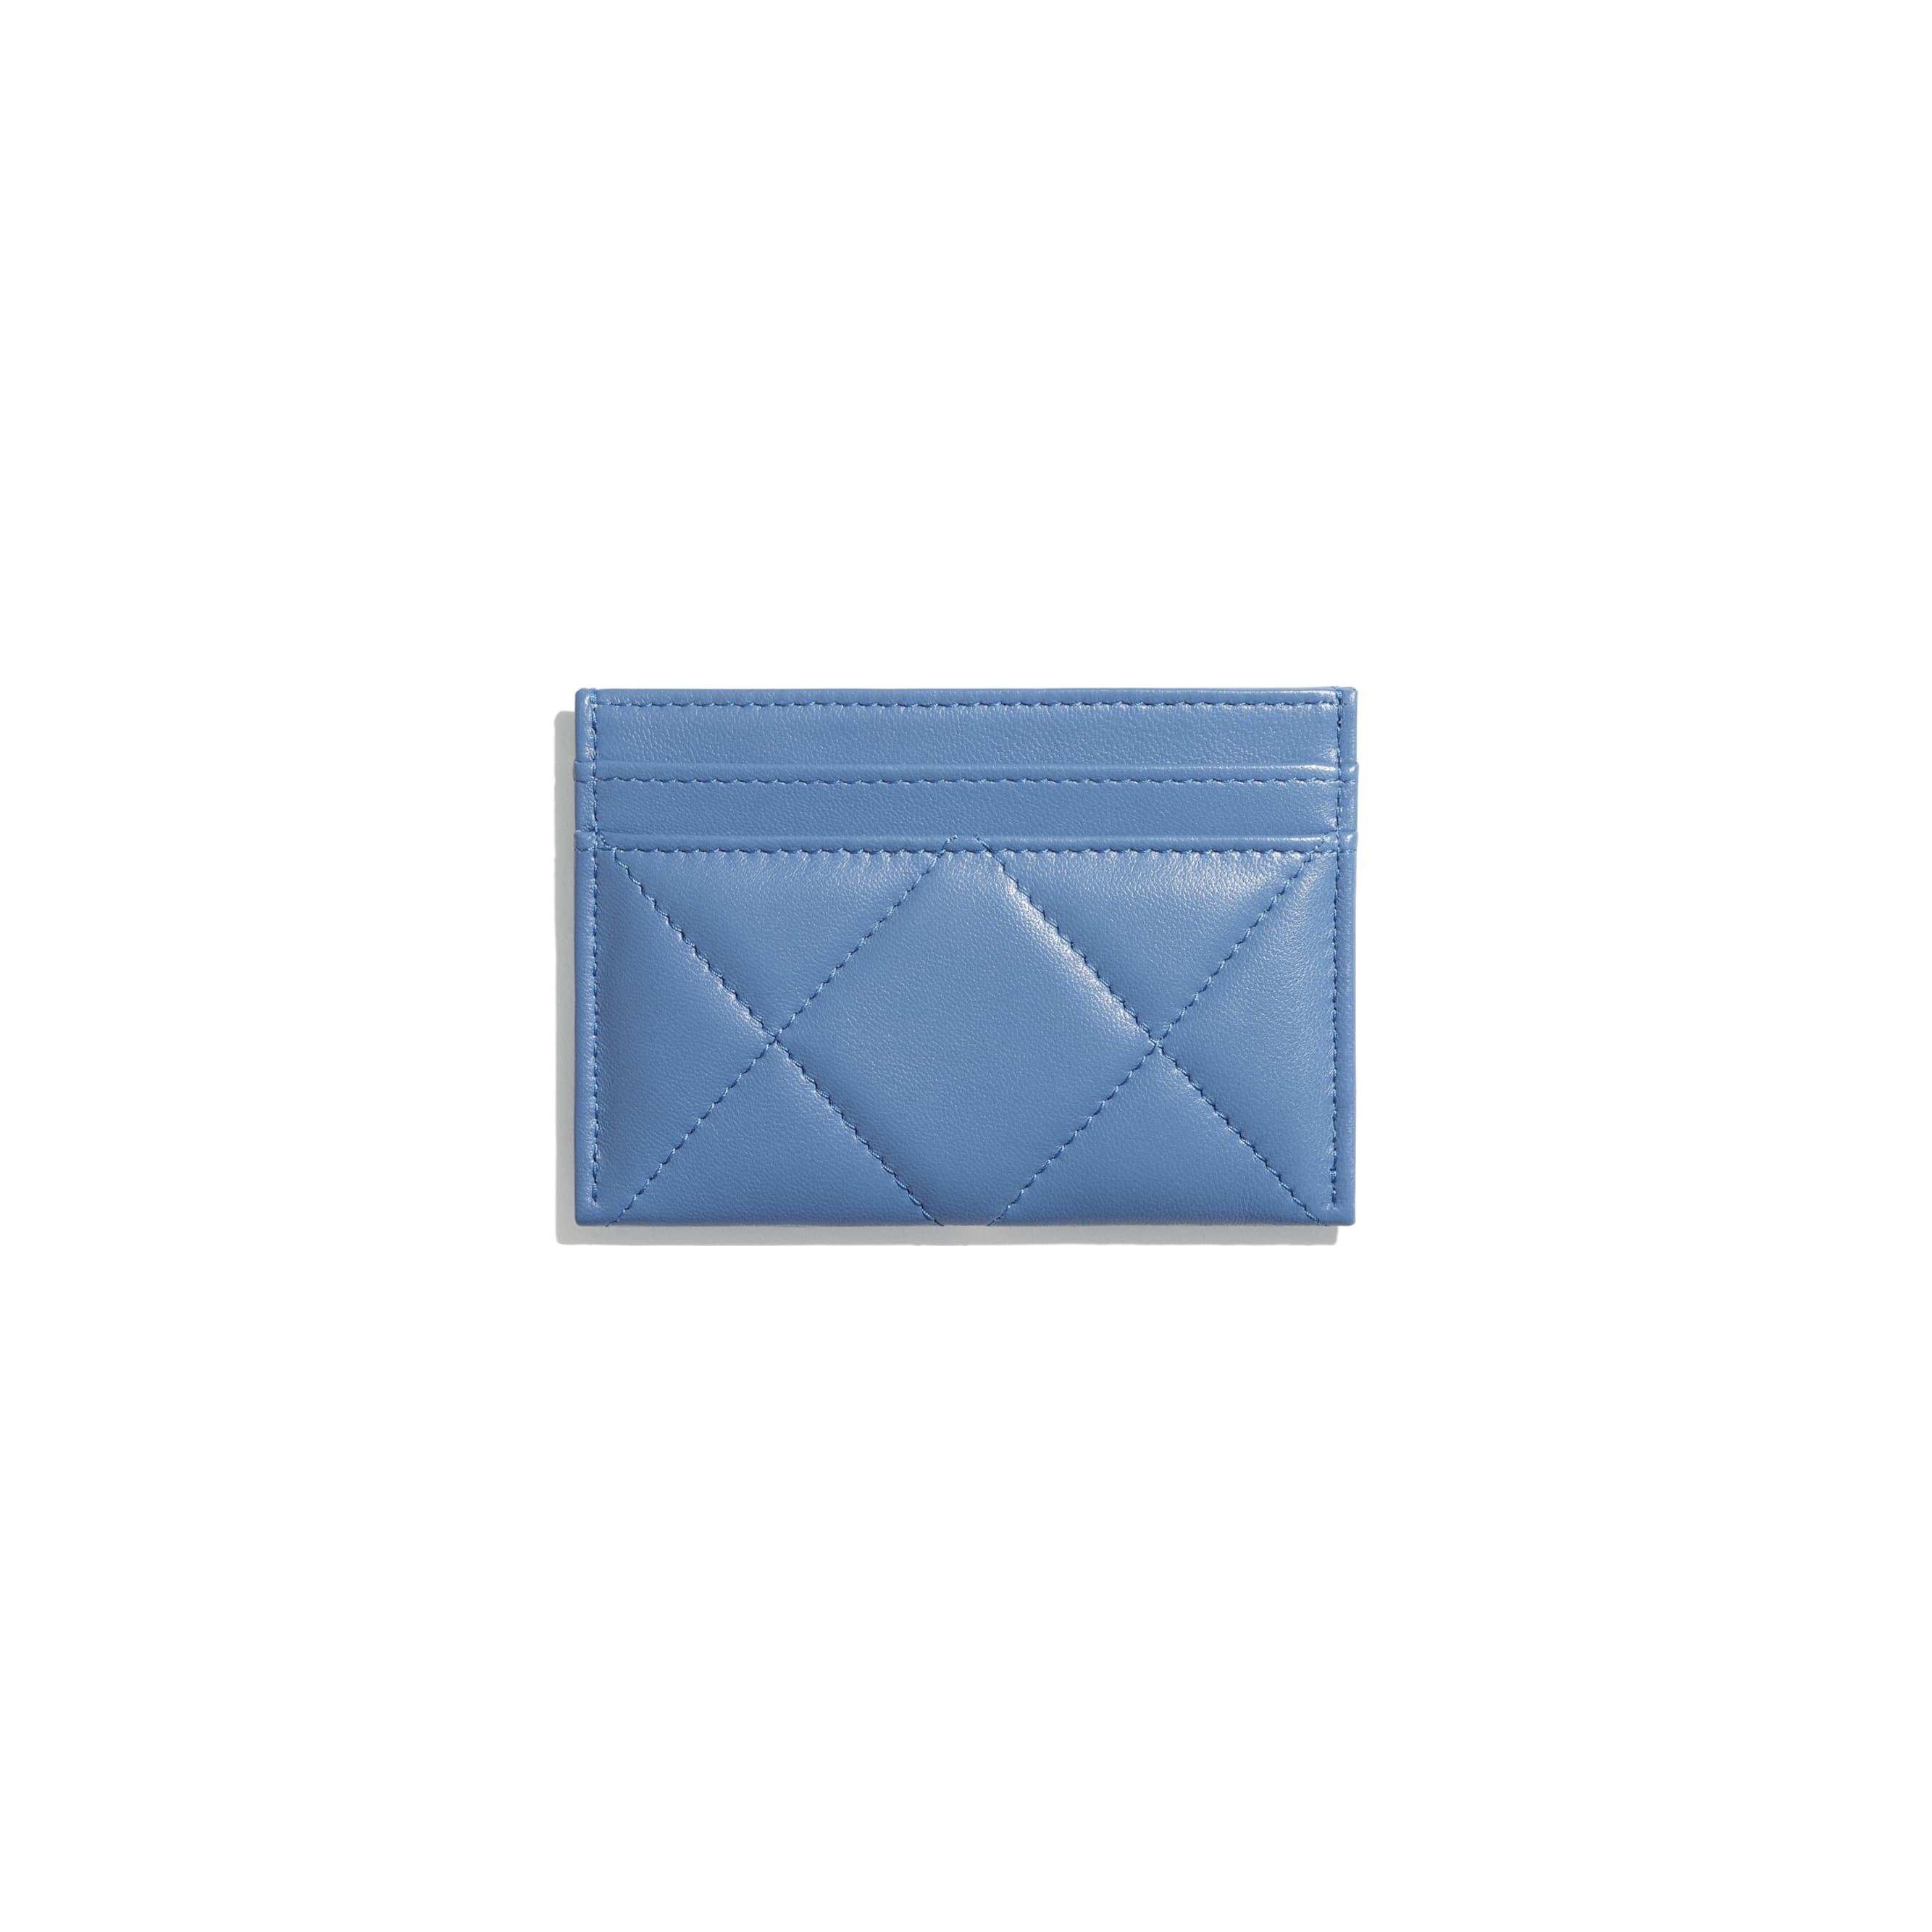 CHANEL 19 Card Holder - Blue - Lambskin, Gold-Tone, Silver-Tone & Ruthenium-Finish Metal - CHANEL - Alternative view - see standard sized version